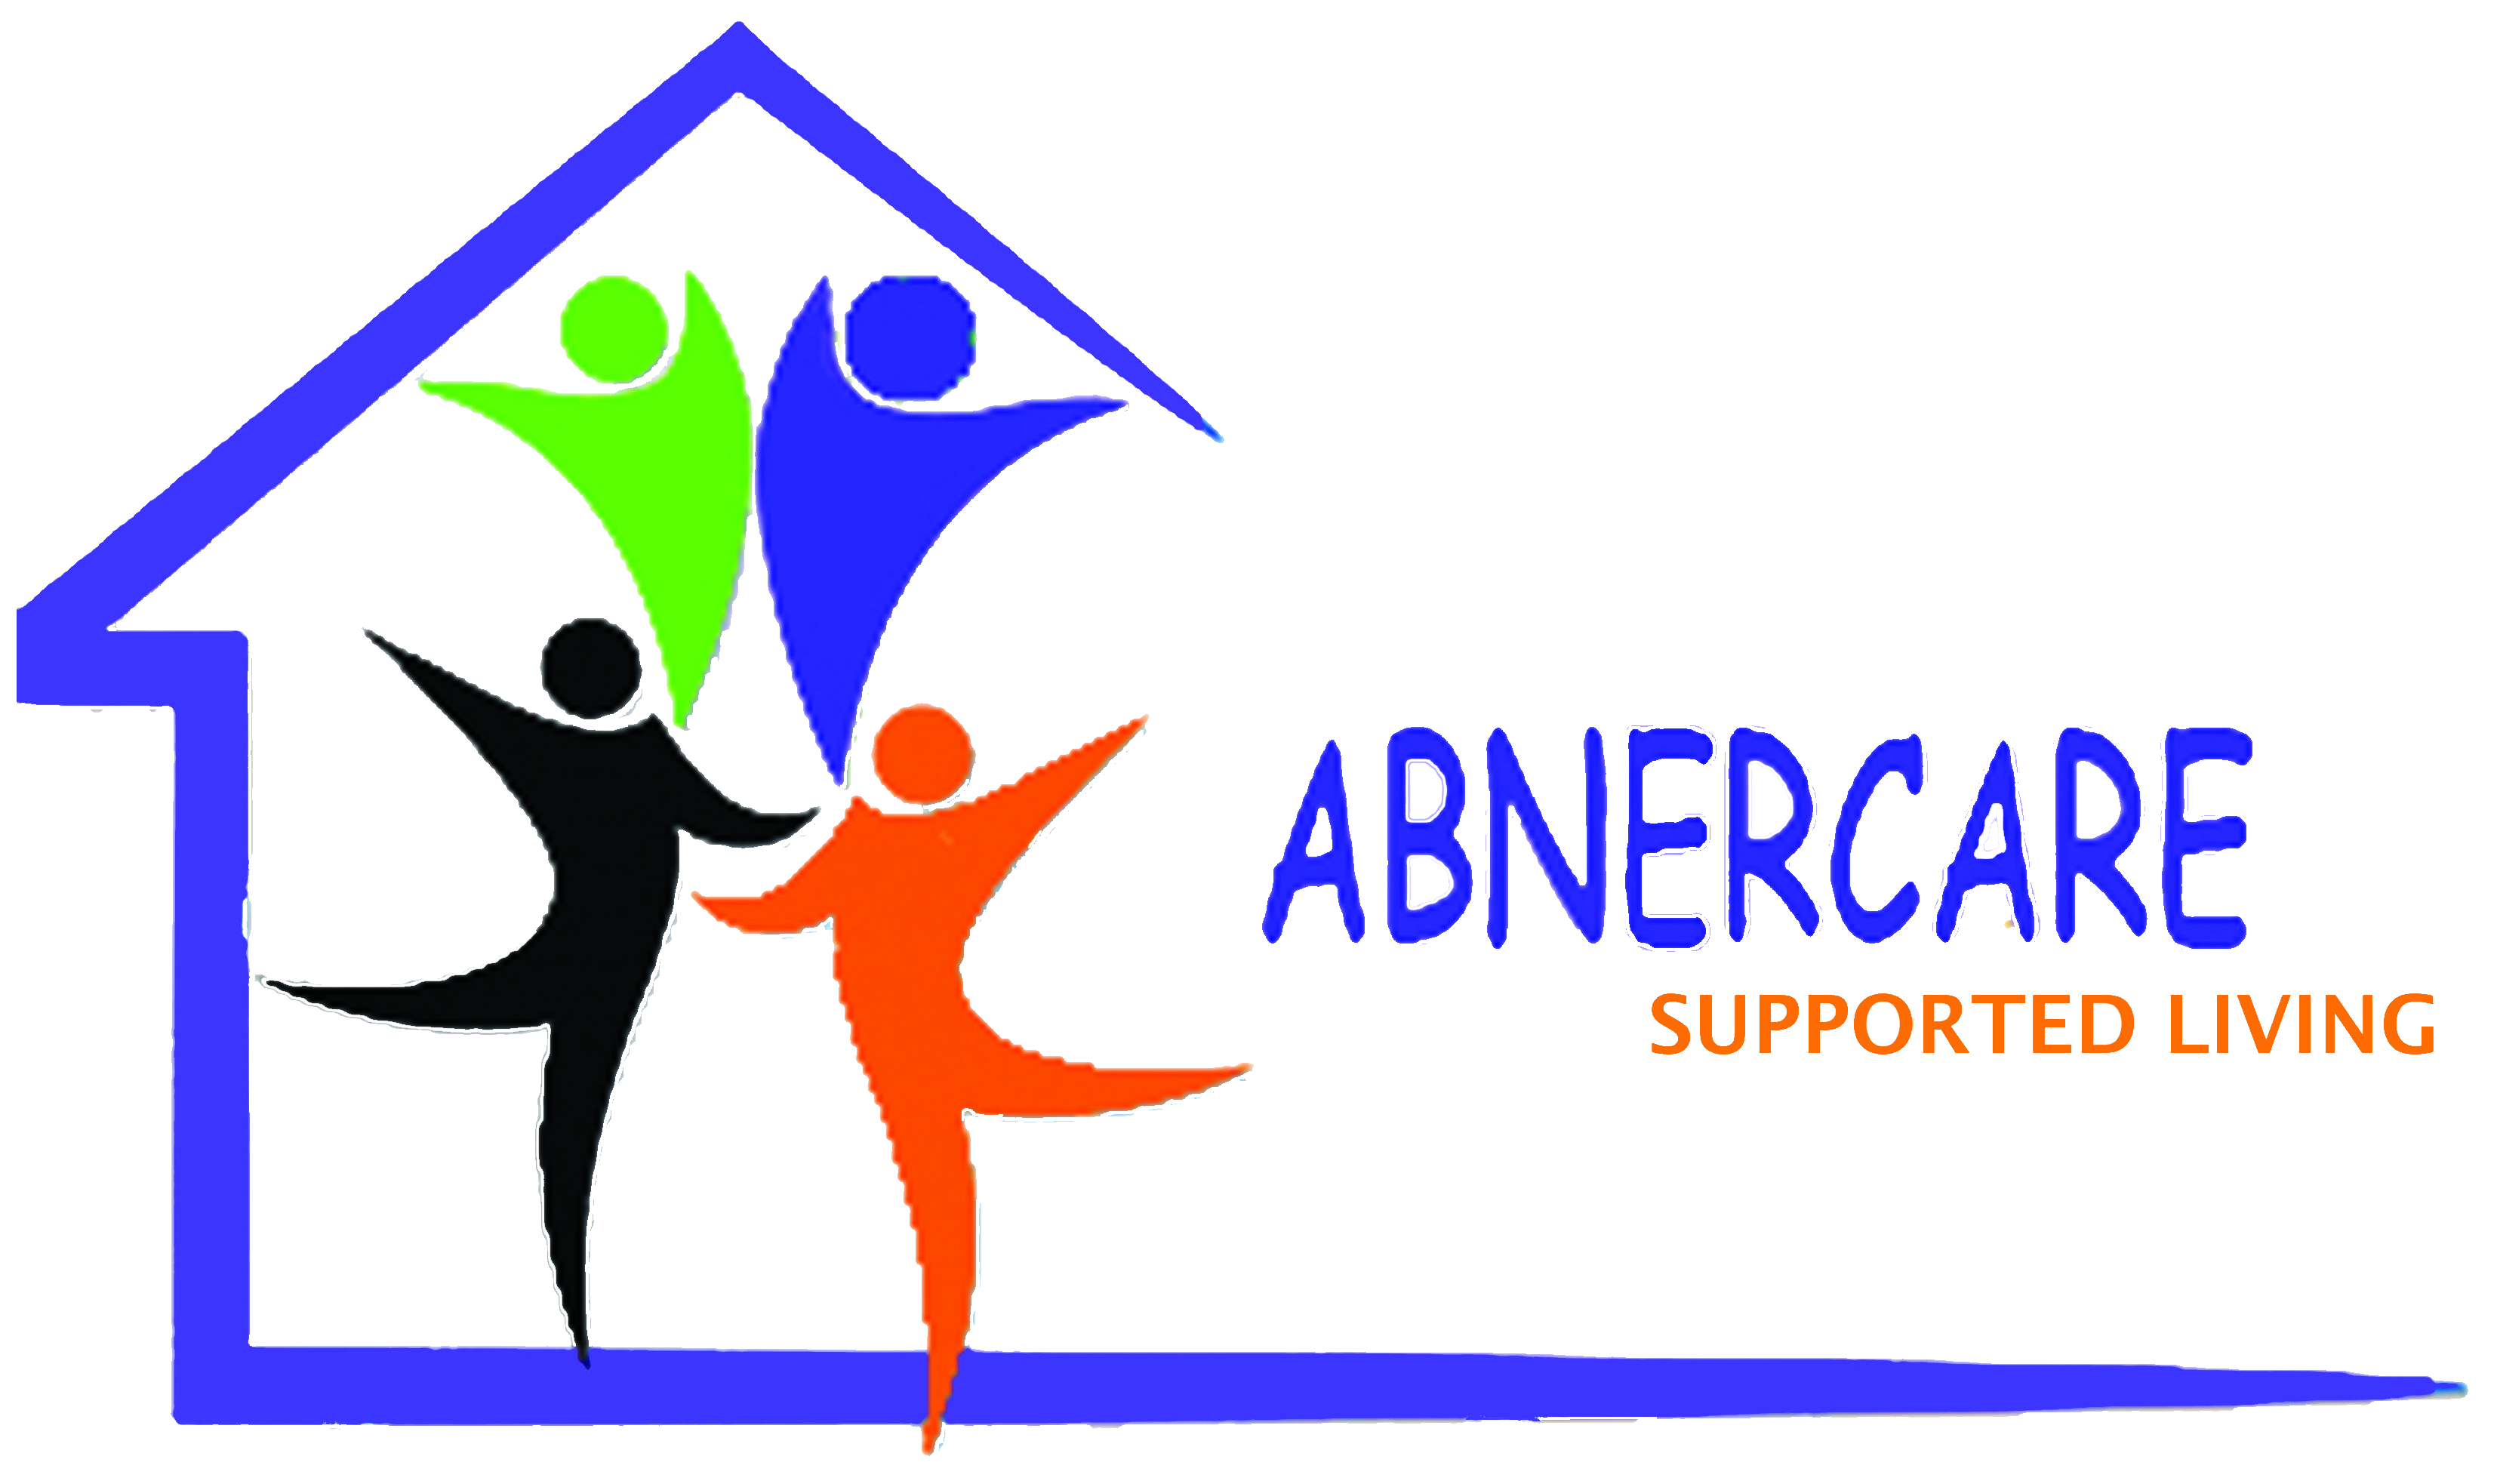 Supported living in Liverpool | Merseyside | Abnercare